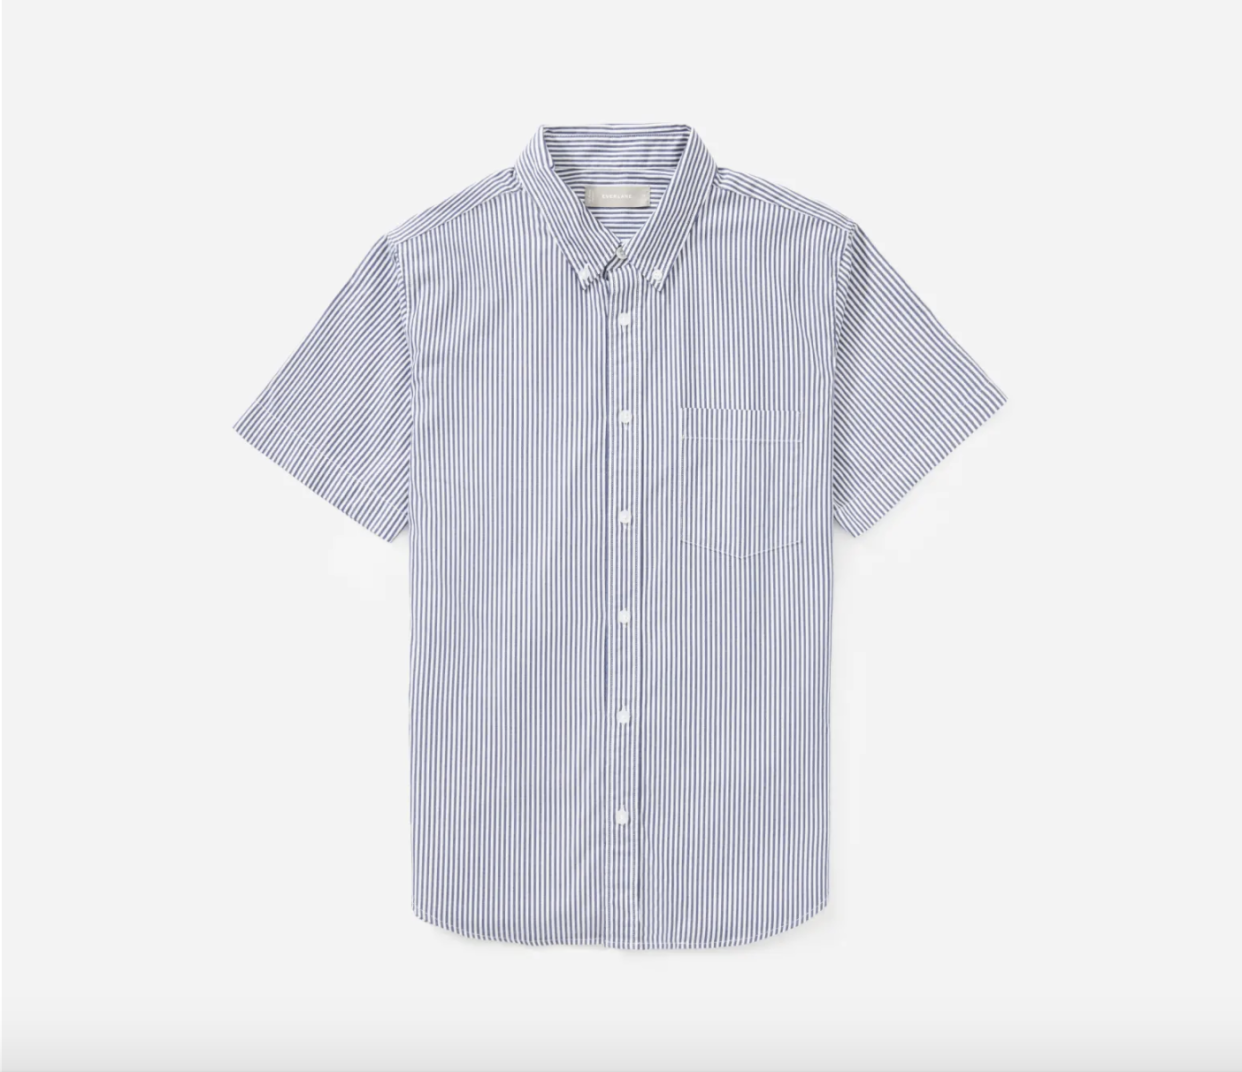 Expert shopping: Untucked men's shirts